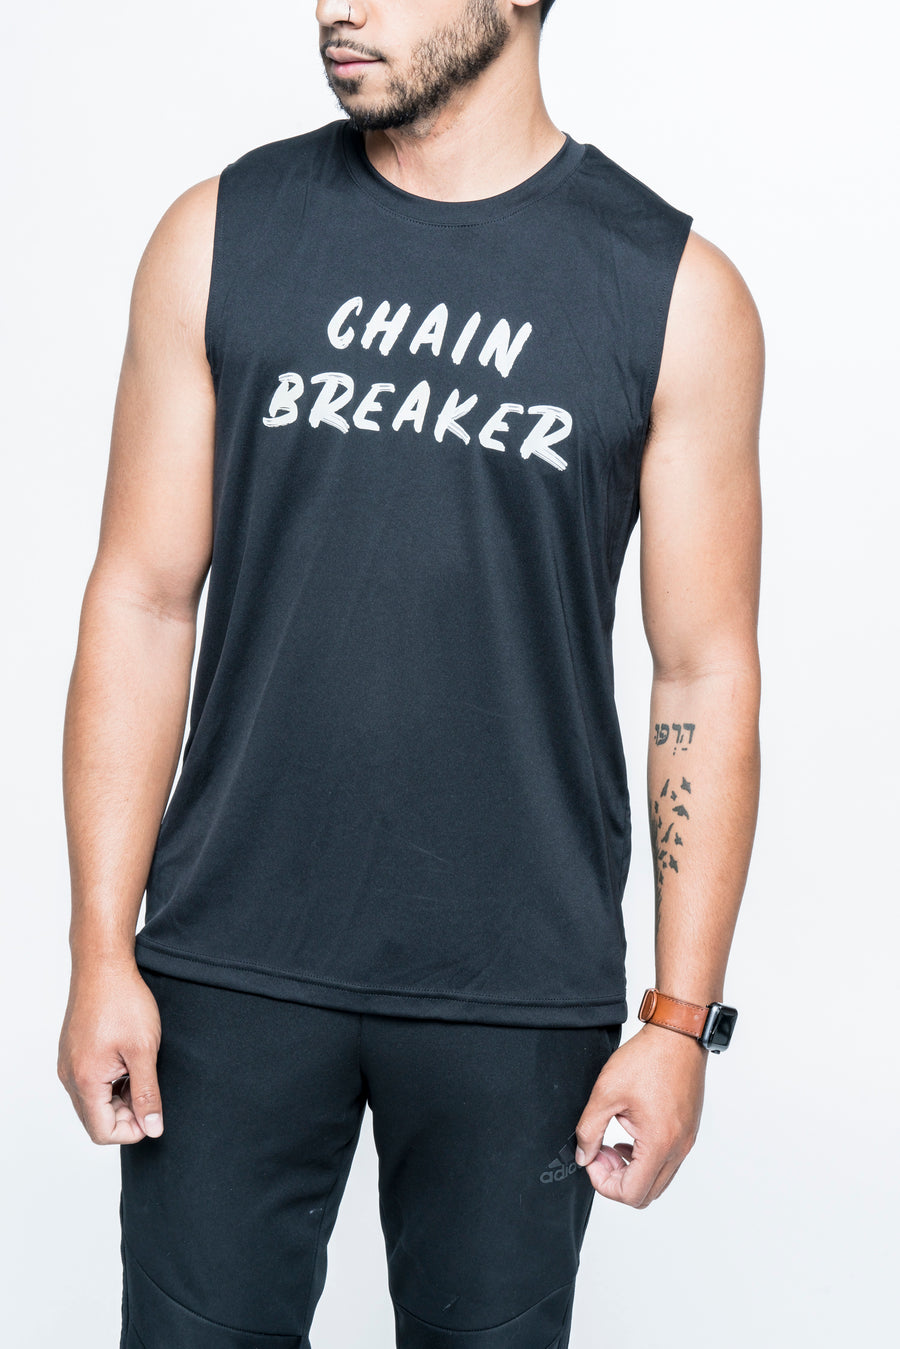 Chain Breaker Muscle Tee